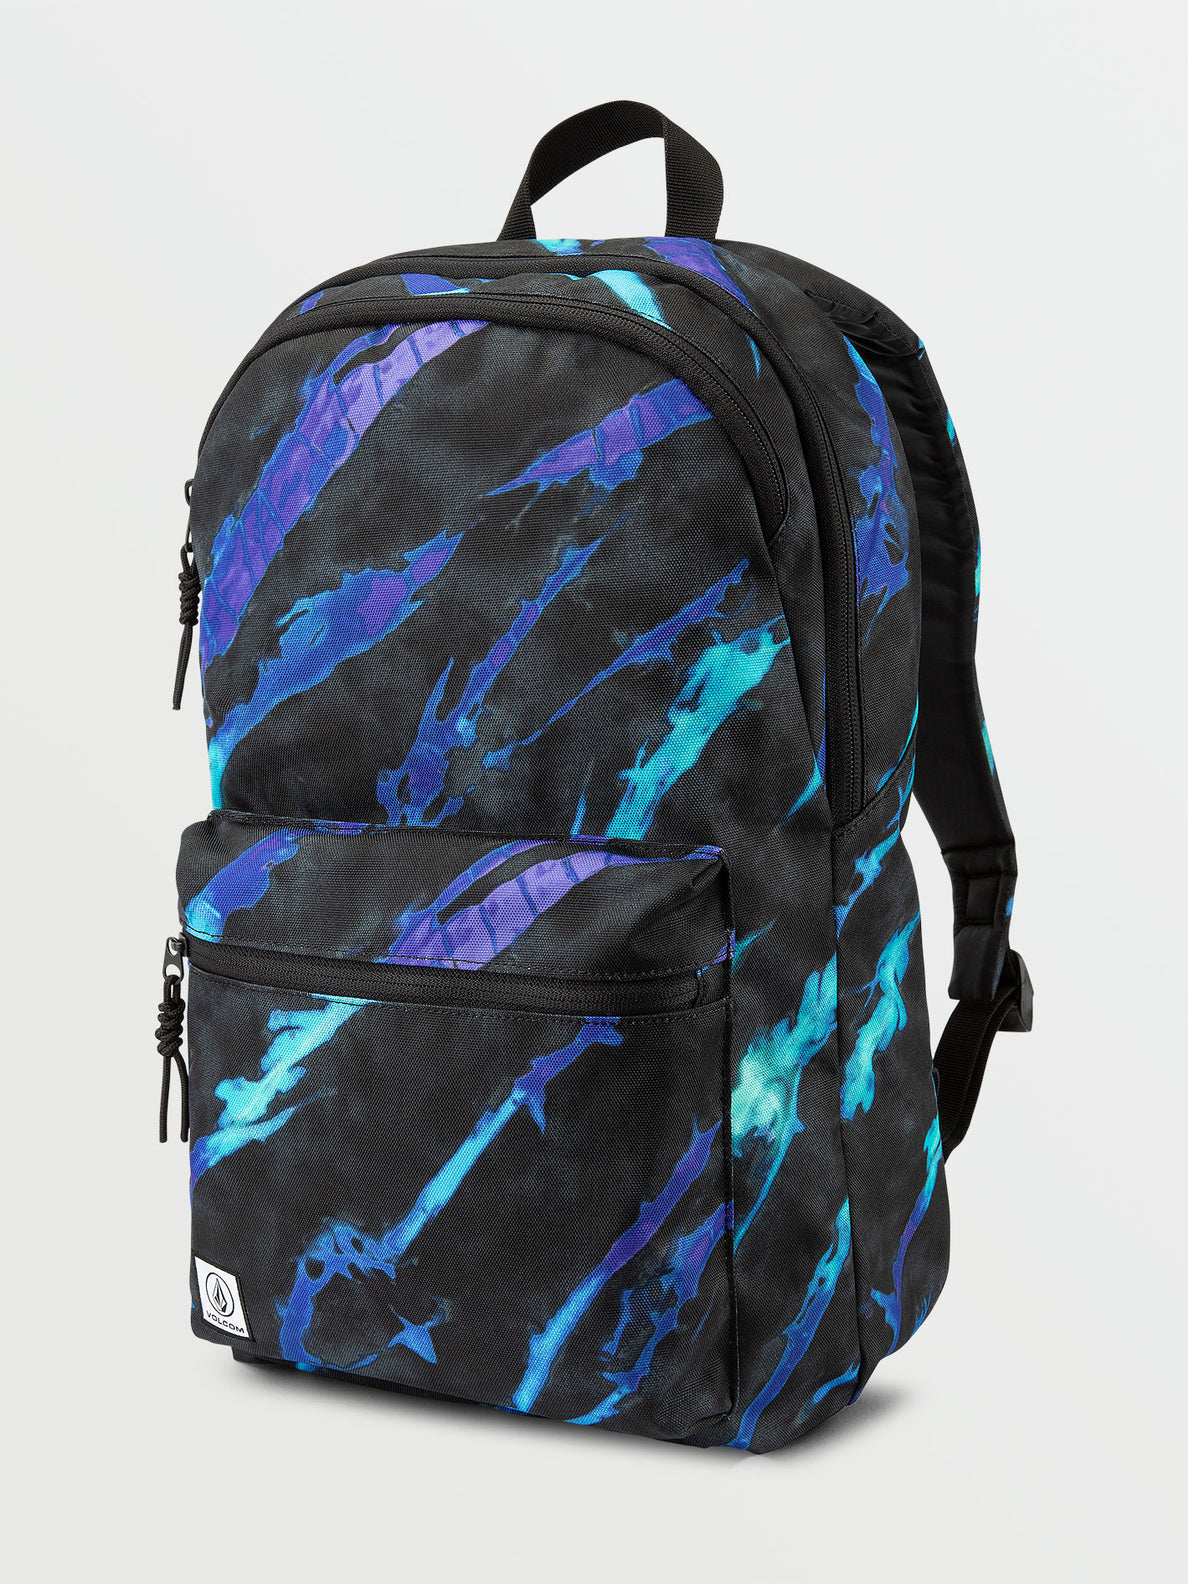 Academy Backpack - Tie Dye